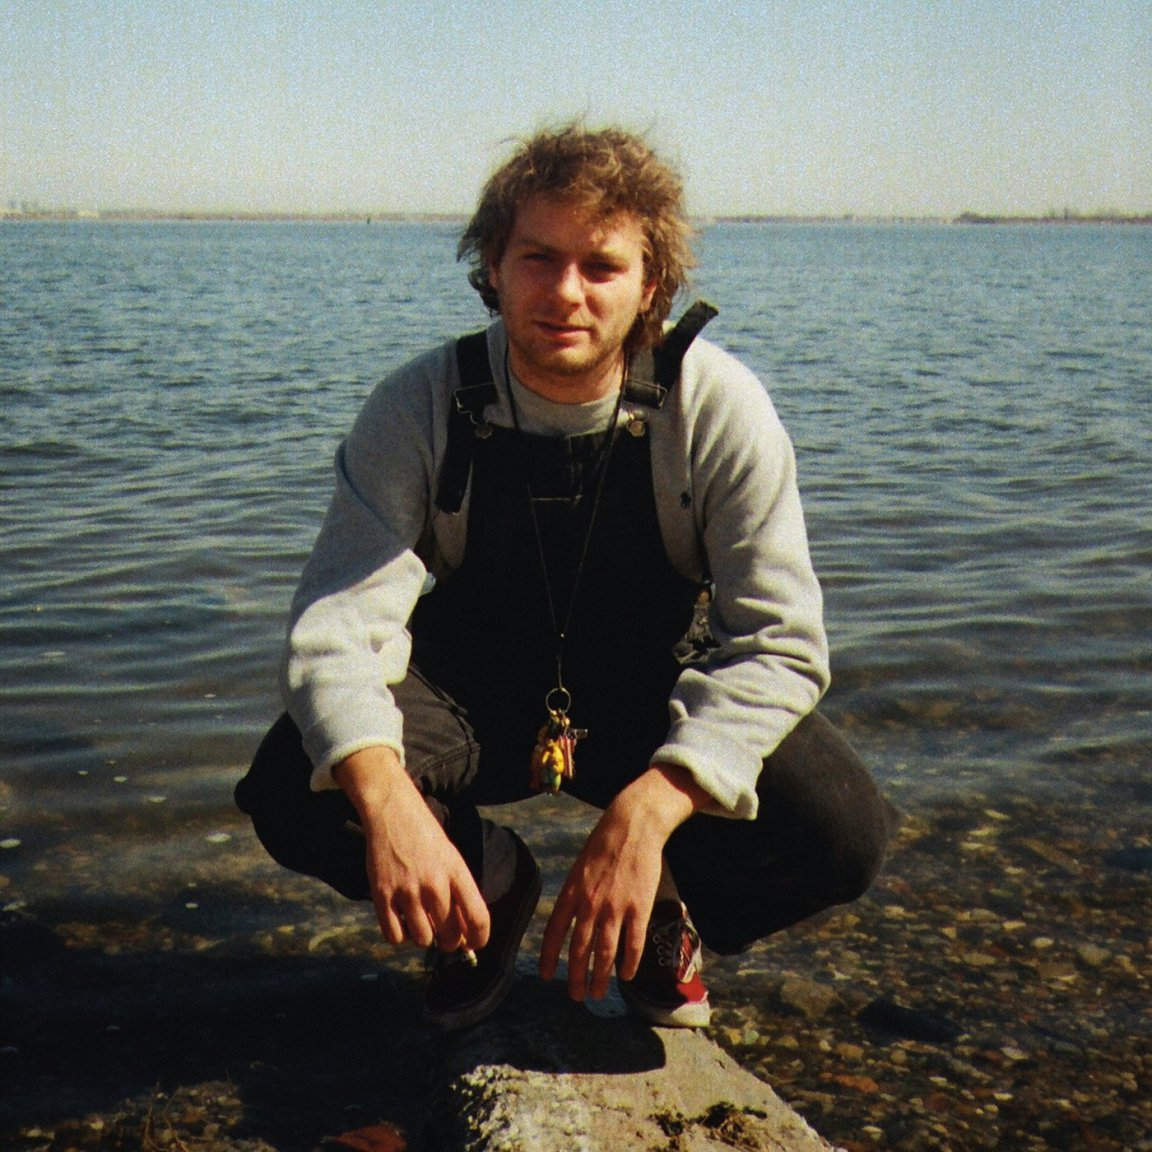 Mac Demarco, 'Another One' (Review)